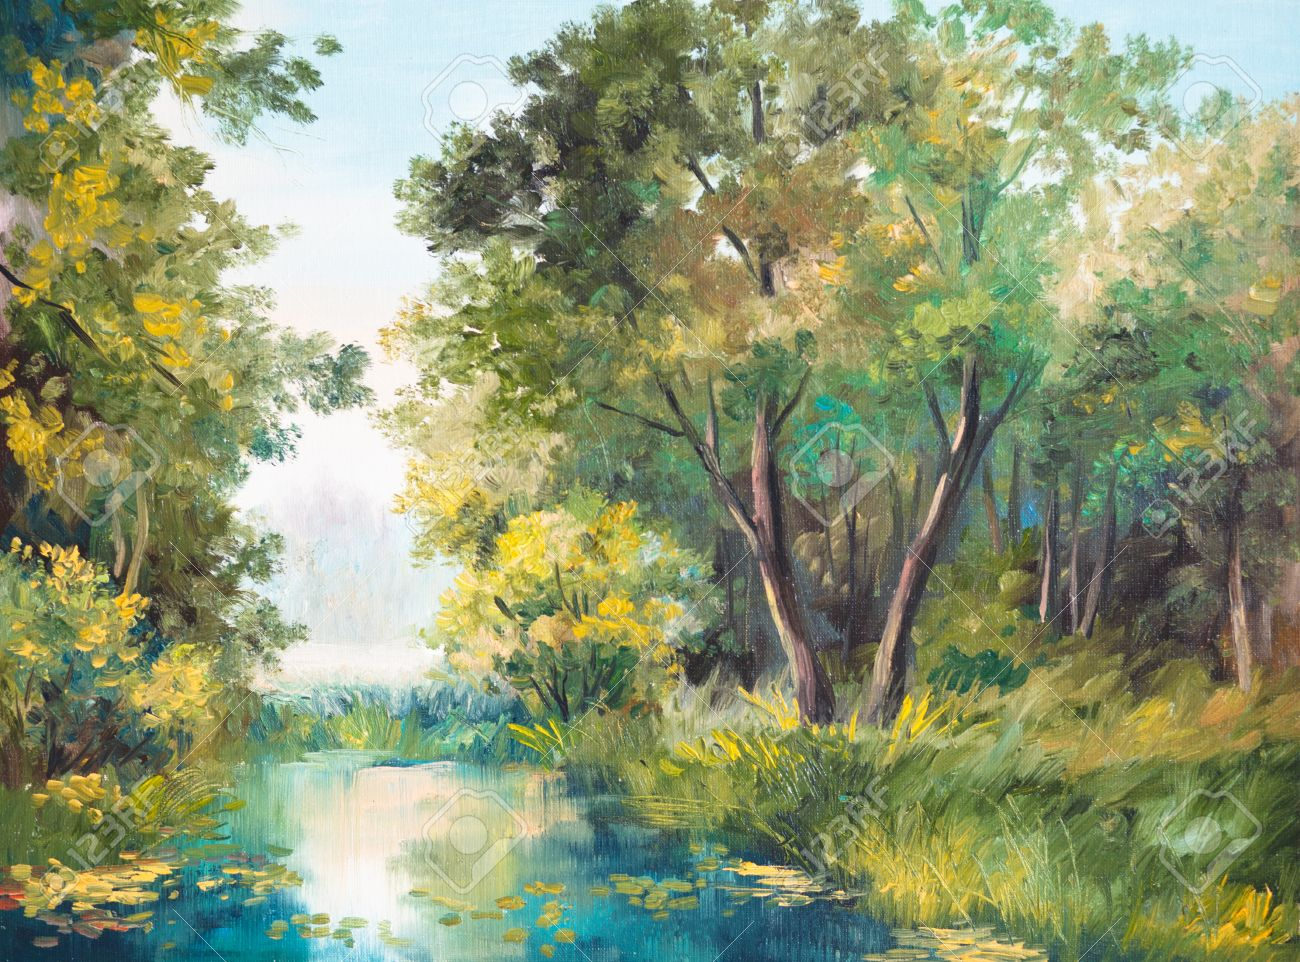 Oil Painting Of Forest Landscape - Pond In The Forest. Abstract ...